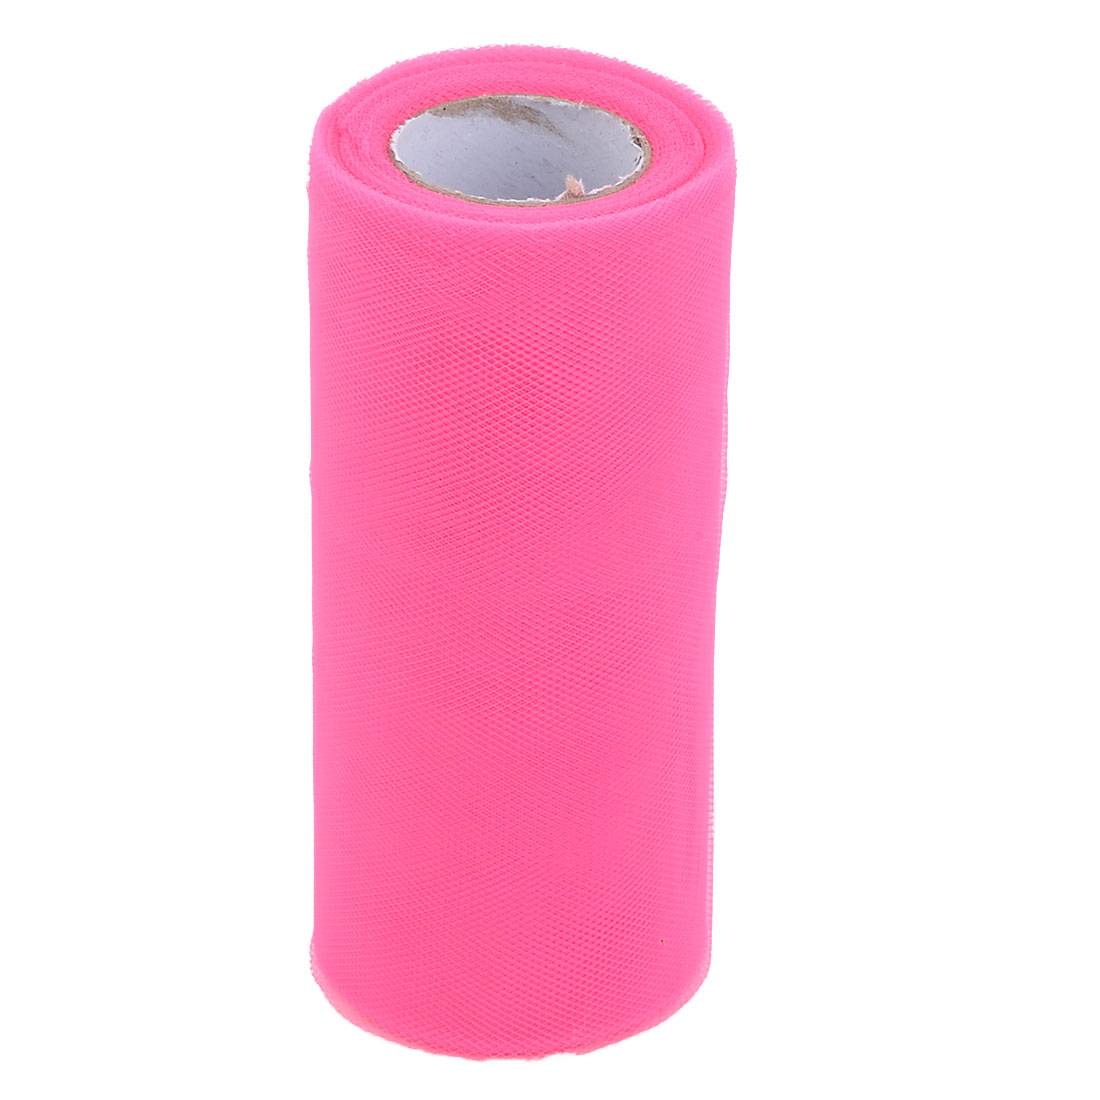 Banquet Polyester Craft Sewing Wedding Dress Tulle Spool Roll Hot Pink 6 Inch x 25 Yards